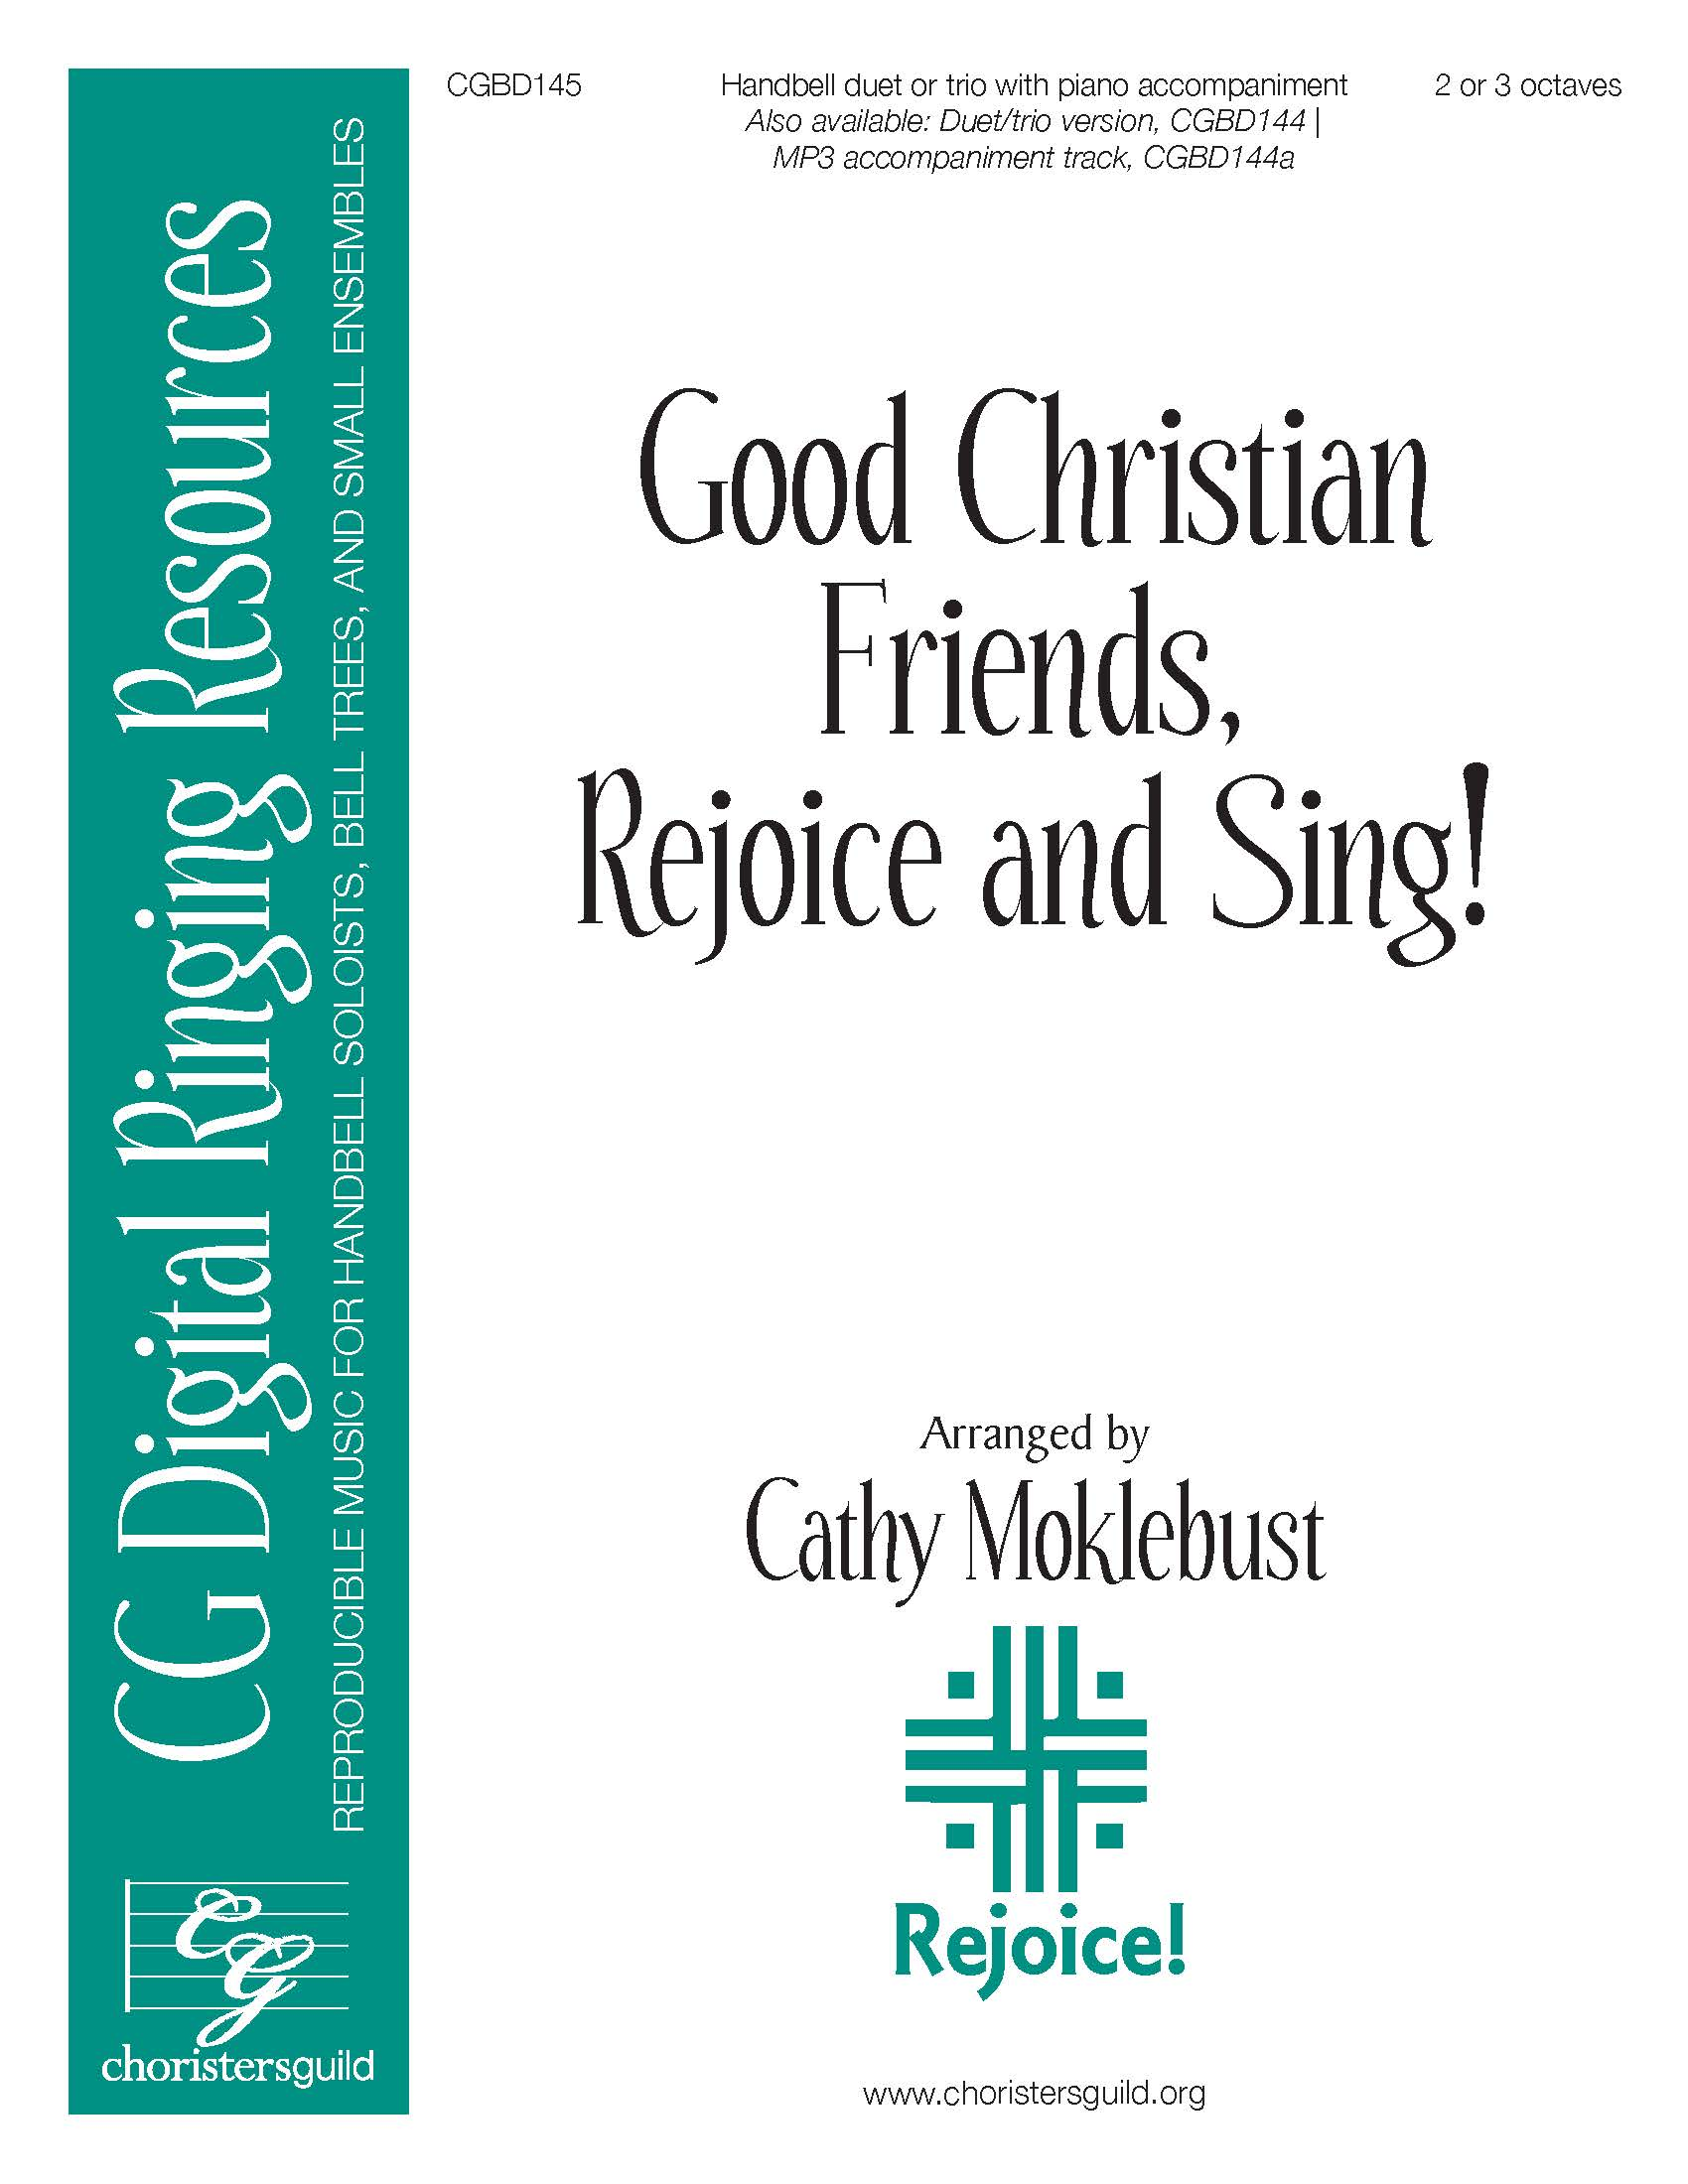 Good Christian Friends, Rejoice and Sing! - Duet or Trio (2-3 octaves)